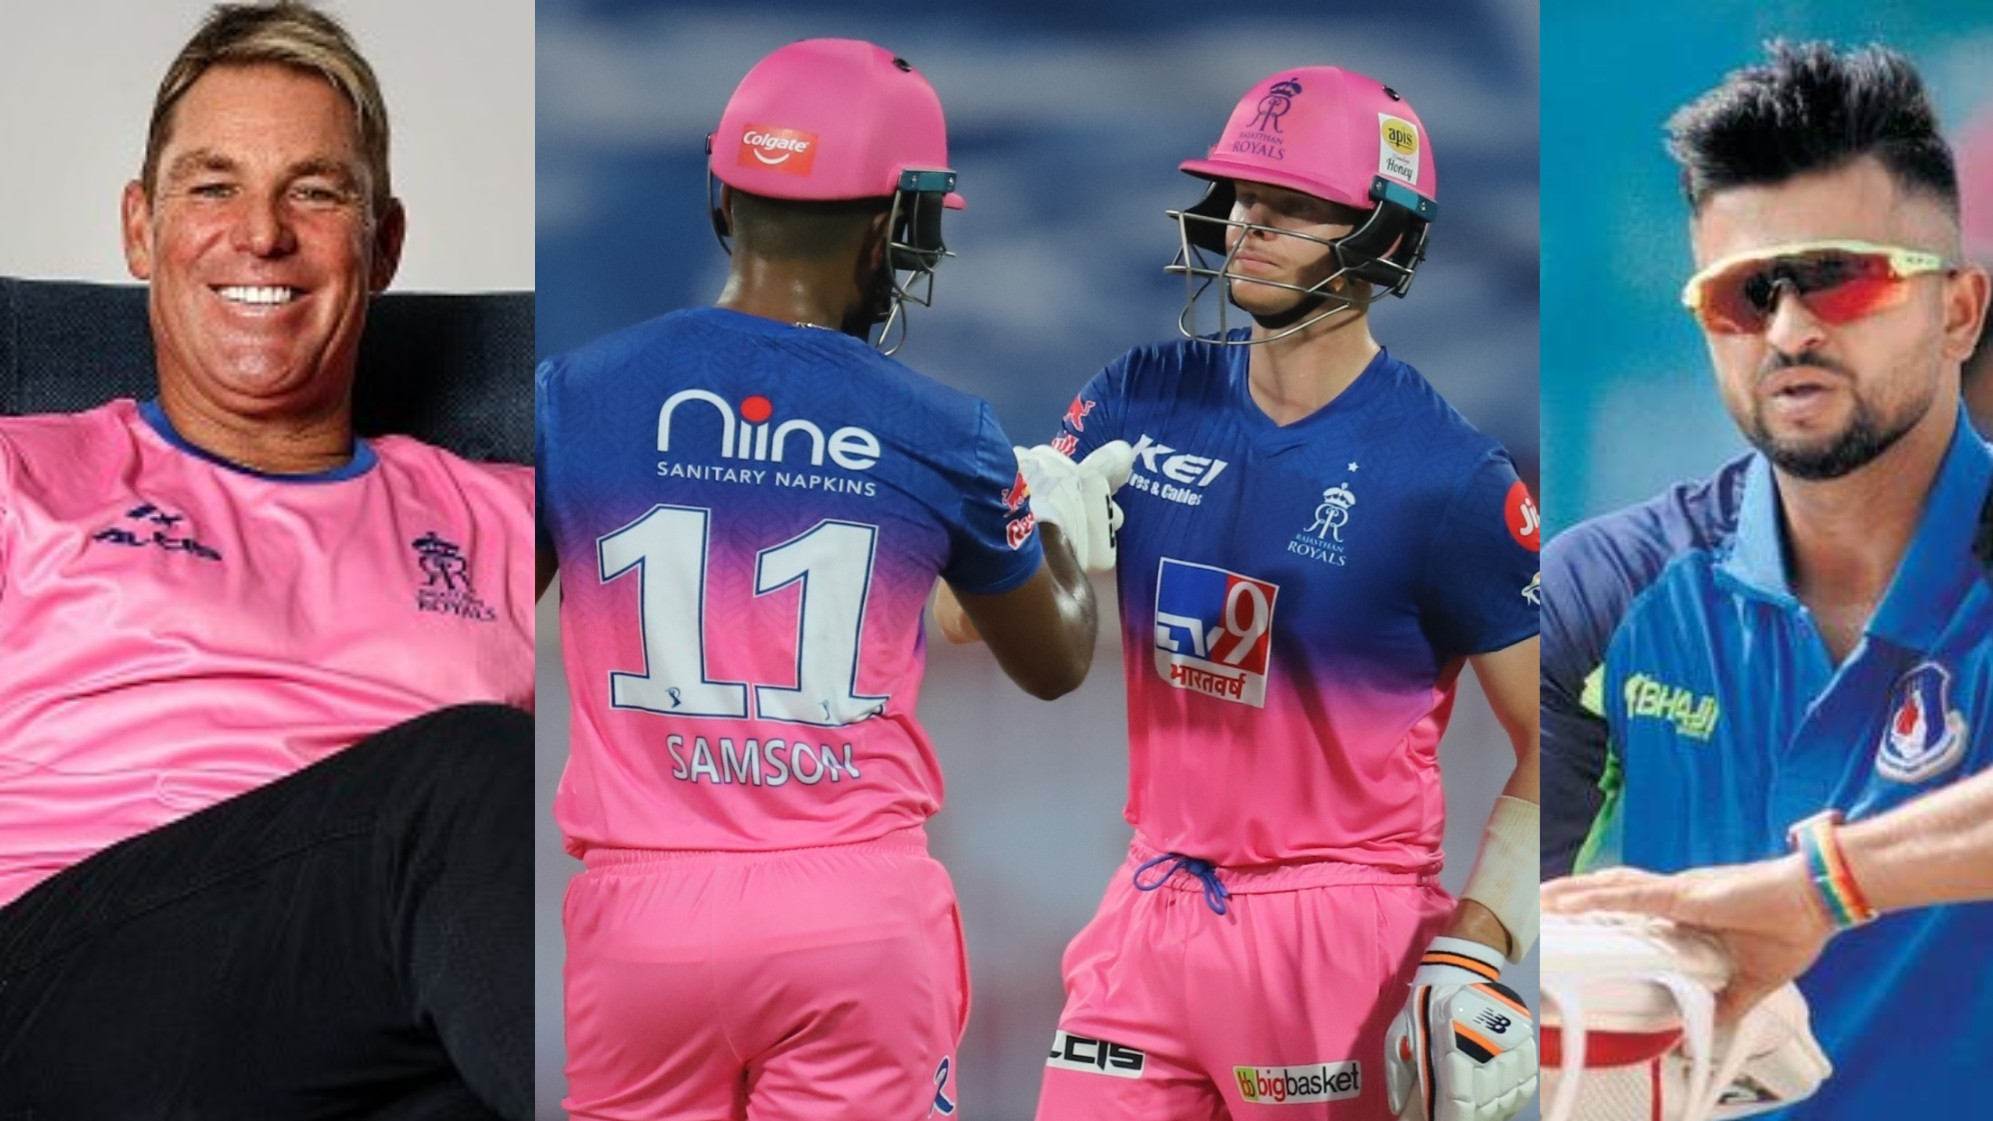 IPL 2020: Cricket fraternity praises RR's 16-run win starring Sanju Samson; Faf du Plessis' effort goes in vain